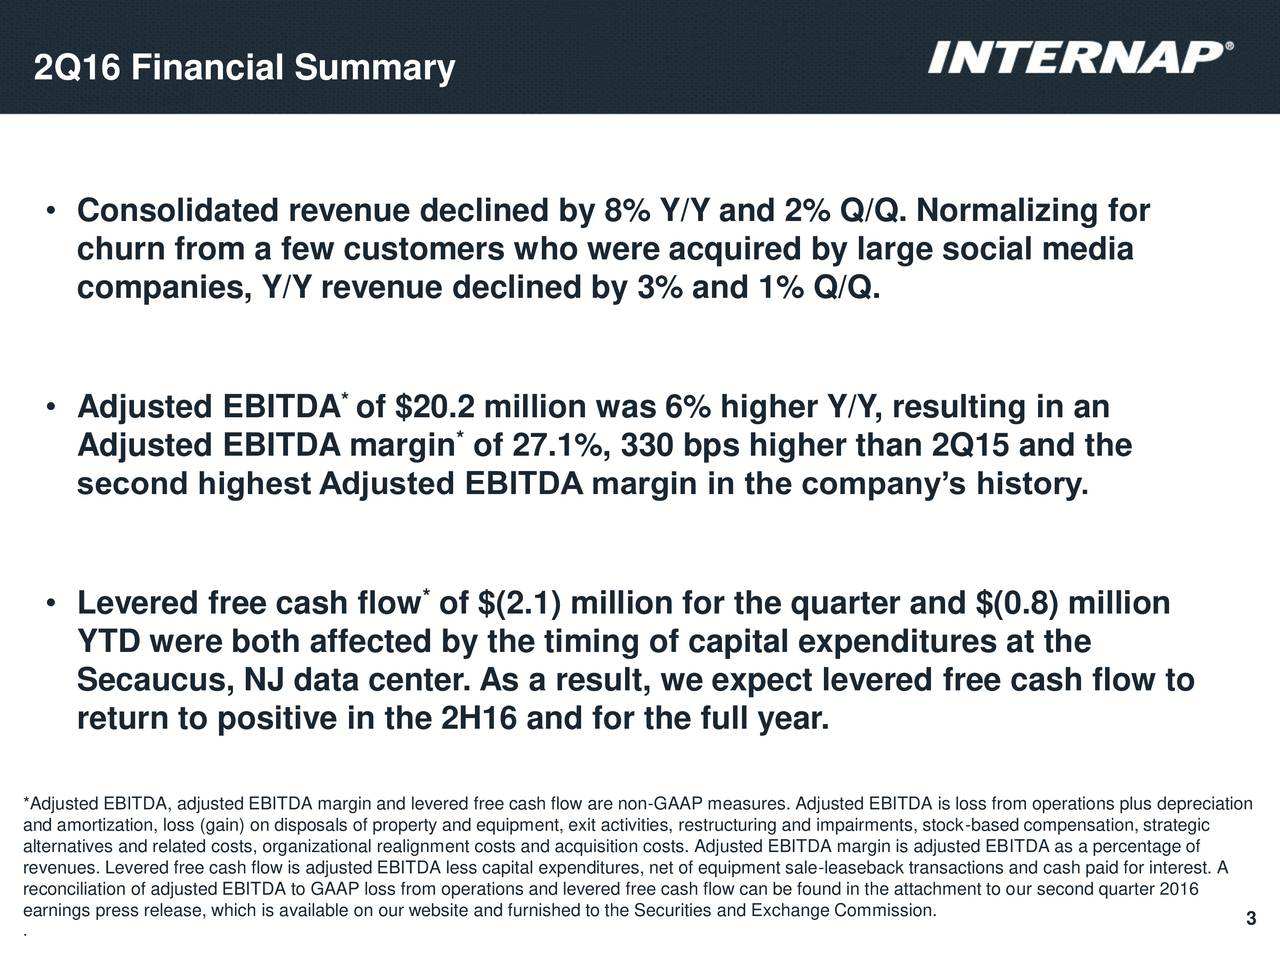 Consolidated revenue declined by 8% Y/Y and 2% Q/Q. Normalizing for churn from a few customers who were acquired by large social media companies, Y/Y revenue declined by 3% and 1% Q/Q. * Adjusted EBITDA of $20.2 million was 6% higher Y/Y, resulting in an Adjusted EBITDA margin of 27.1%, 330 bps higher than 2Q15 and the second highest Adjusted EBITDA margin in the companys history. Levered free cash flow of $(2.1) million for the quarter and $(0.8) million YTD were both affected by the timing of capital expenditures at the Secaucus, NJ data center. As a result, we expect levered free cash flow to return to positive in the 2H16 and for the full year. *Adjusted EBITDA, adjusted EBITDA margin and levered free cash flow are non-GAAP measures. Adjusted EBITDA is loss from operations plus depreciation and amortization, loss (gain) on disposals of property and equipment, exit activities, restructuring and impairments, stock-based compensation, strategic alternatives and related costs, organizational realignment costs and acquisition costs. Adjusted EBITDA margin is adjusted EBITDA as a percentage of reconciliation of adjusted EBITDA to GAAP loss from operations and levered free cash flow can be found in the attachment to our second quarter 2016est. A earnings press release, which is available on our website and furnished to the Securities and Exchange Commission. . 3